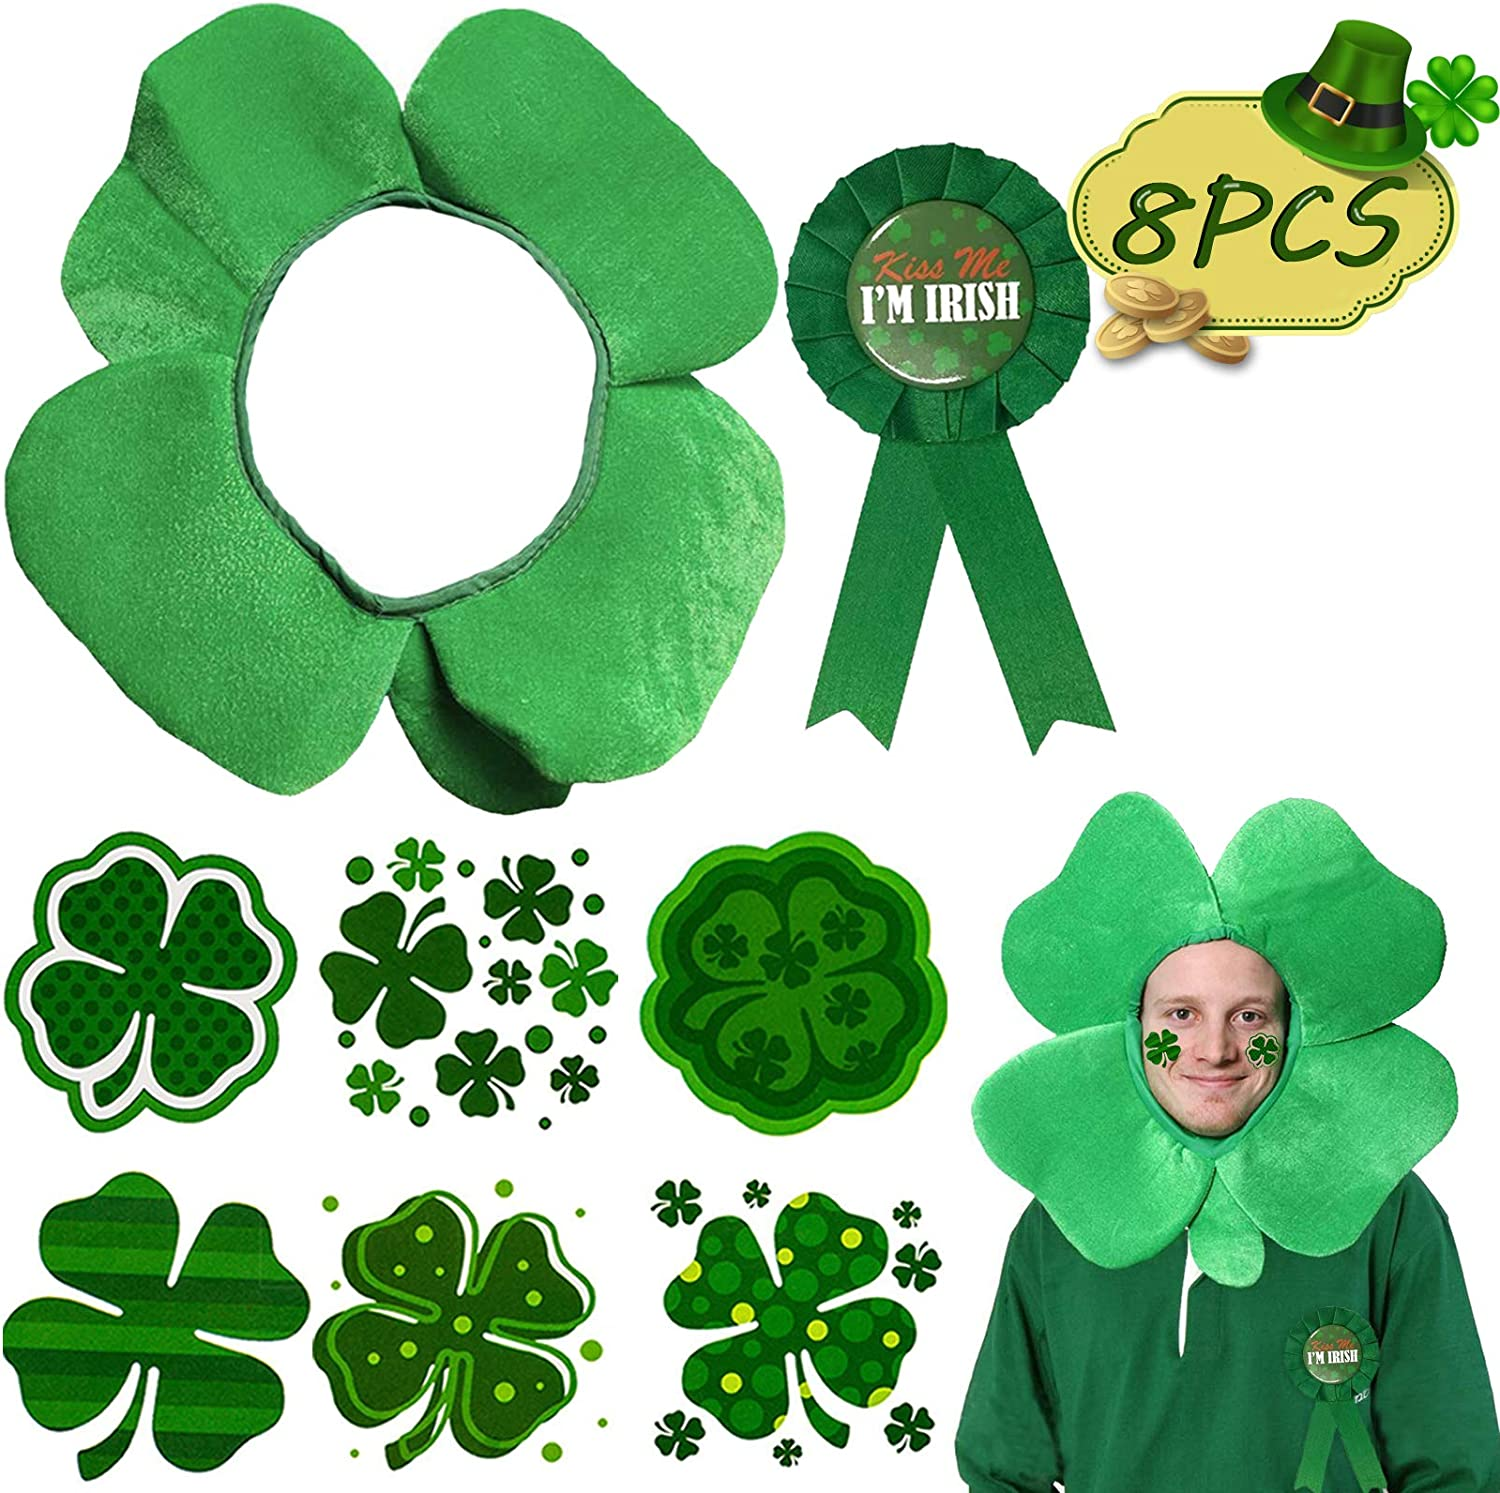 St. Patrick's Day Accessories, Funny Hats Button Pins Badges Clover Temporary Tattoos for Women Men Toddlers, Saint Irish Themed Decorations Costumes Party Favors Supplies